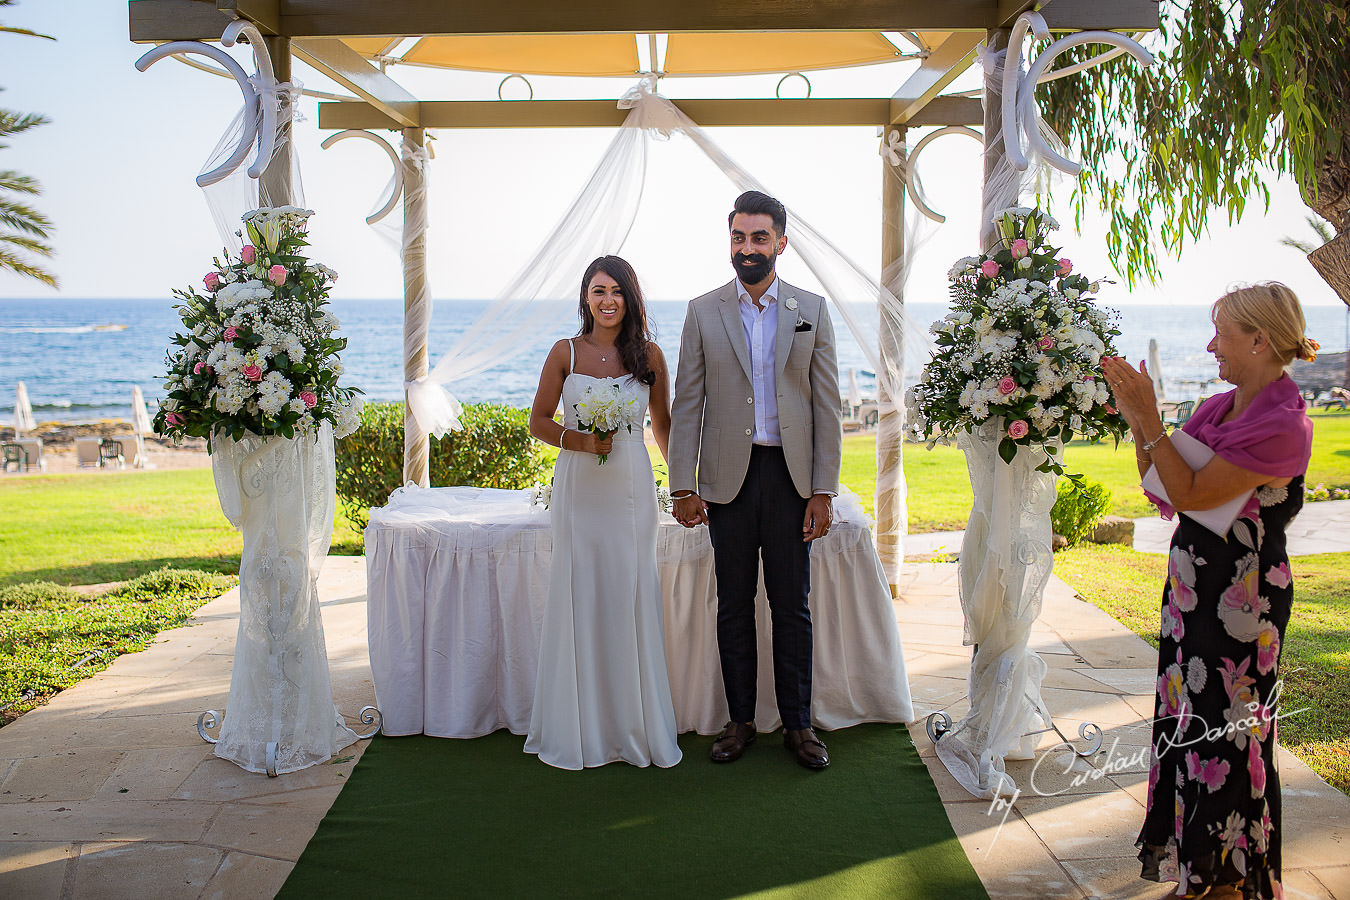 Moments photographed by Cristian Dascalu at Athena Beach Hotel in Paphos, Cyprus, during a symbolic wedding.